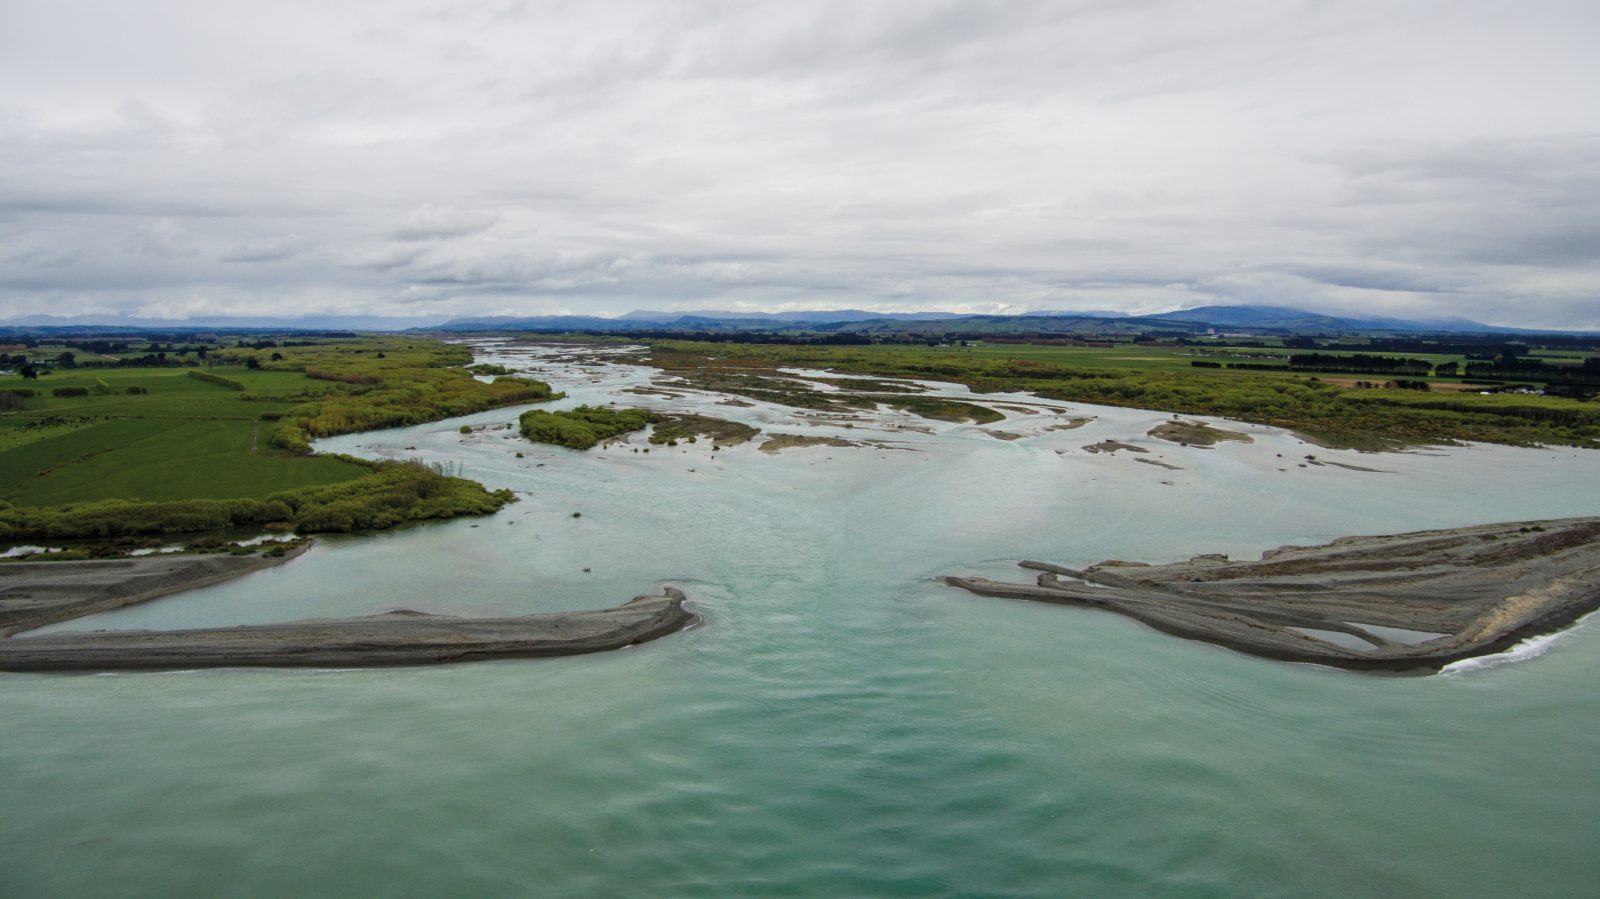 The Waitaki River spills out of the Southern Alps, marking the boundary between Canterbury and Otago. Waitaha Māori ventured deep into the remote interior to harvest moa, transporting them down the river on rafts (mōkihi) made from raupō and flax. Over 1200 ovens for cooking moa flesh were excavated at the Waitaki River mouth, the biggest moa-hunter archaeological site in New Zealand. Over a century of farming and erosion have now destroyed almost every trace of early Māori occupation here.